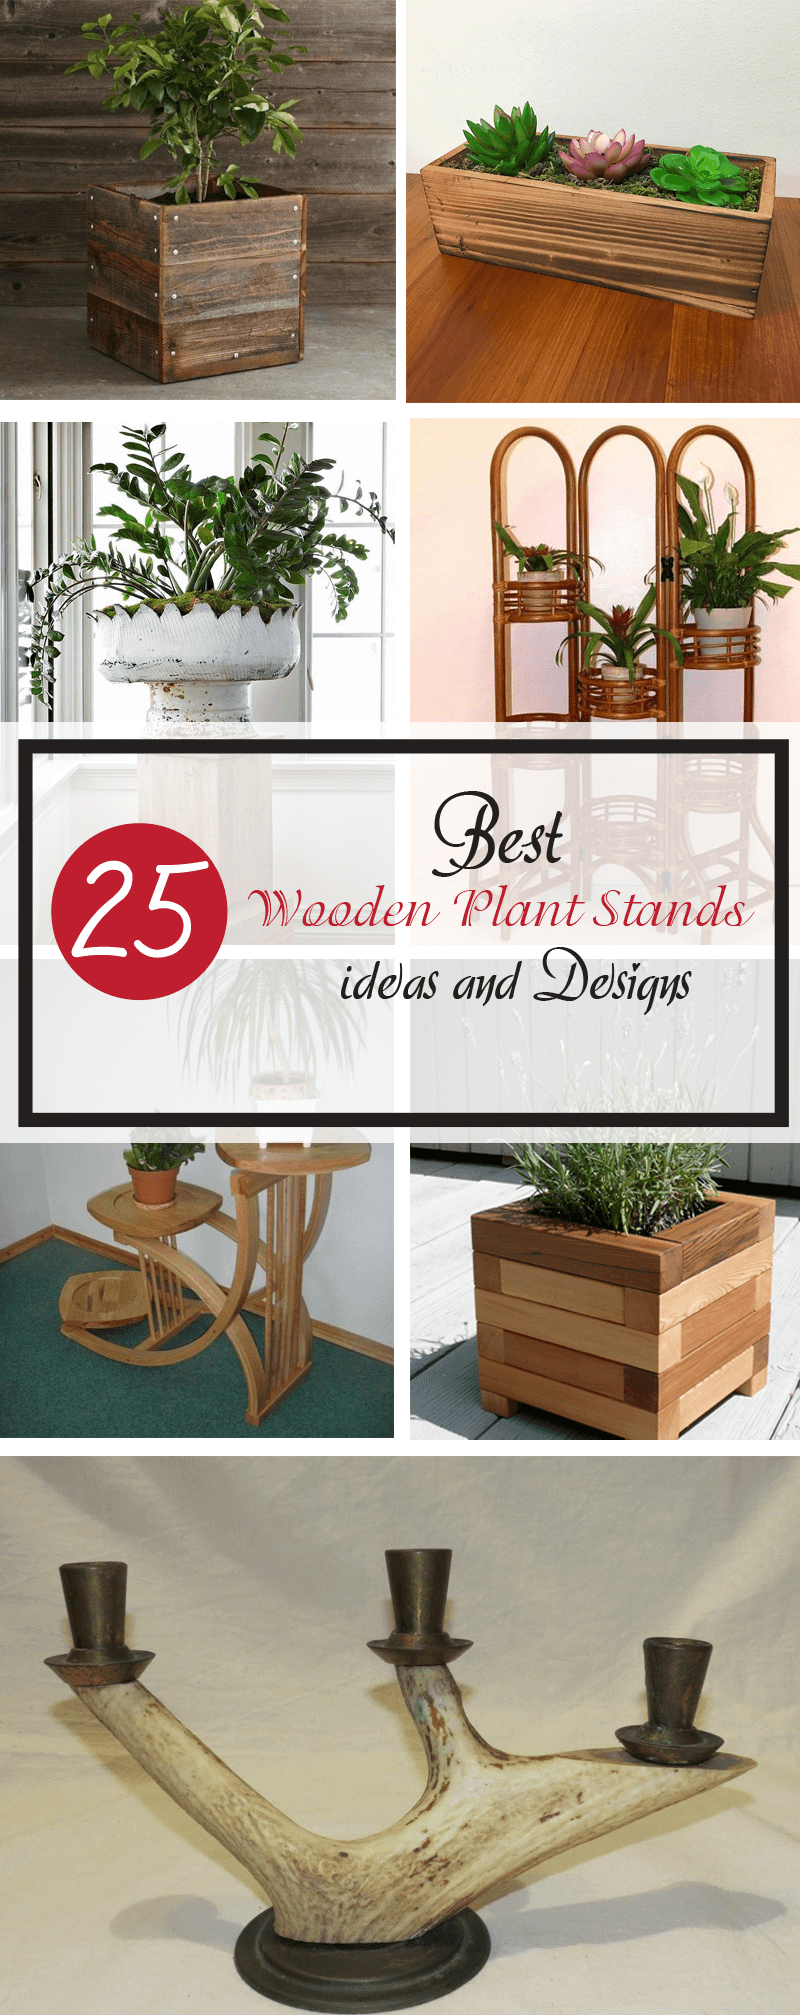 best wooden plant stands ideas and designs